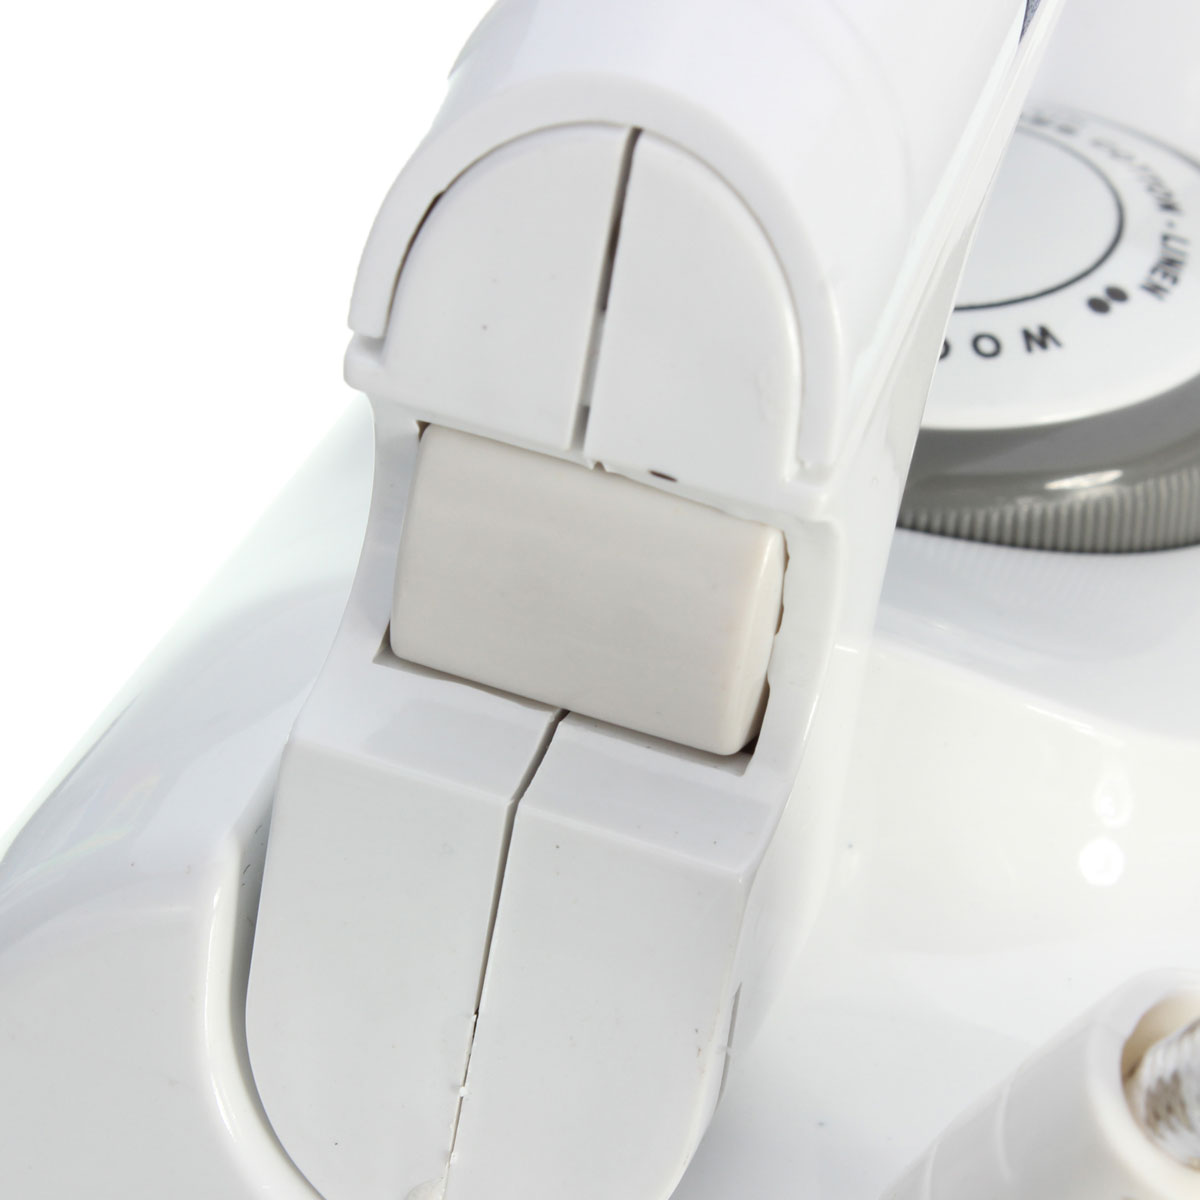 Portable Foldable Folding Adjustable Thermostatic Compact Handheld Flat Travel Steam Iron Temperature Control